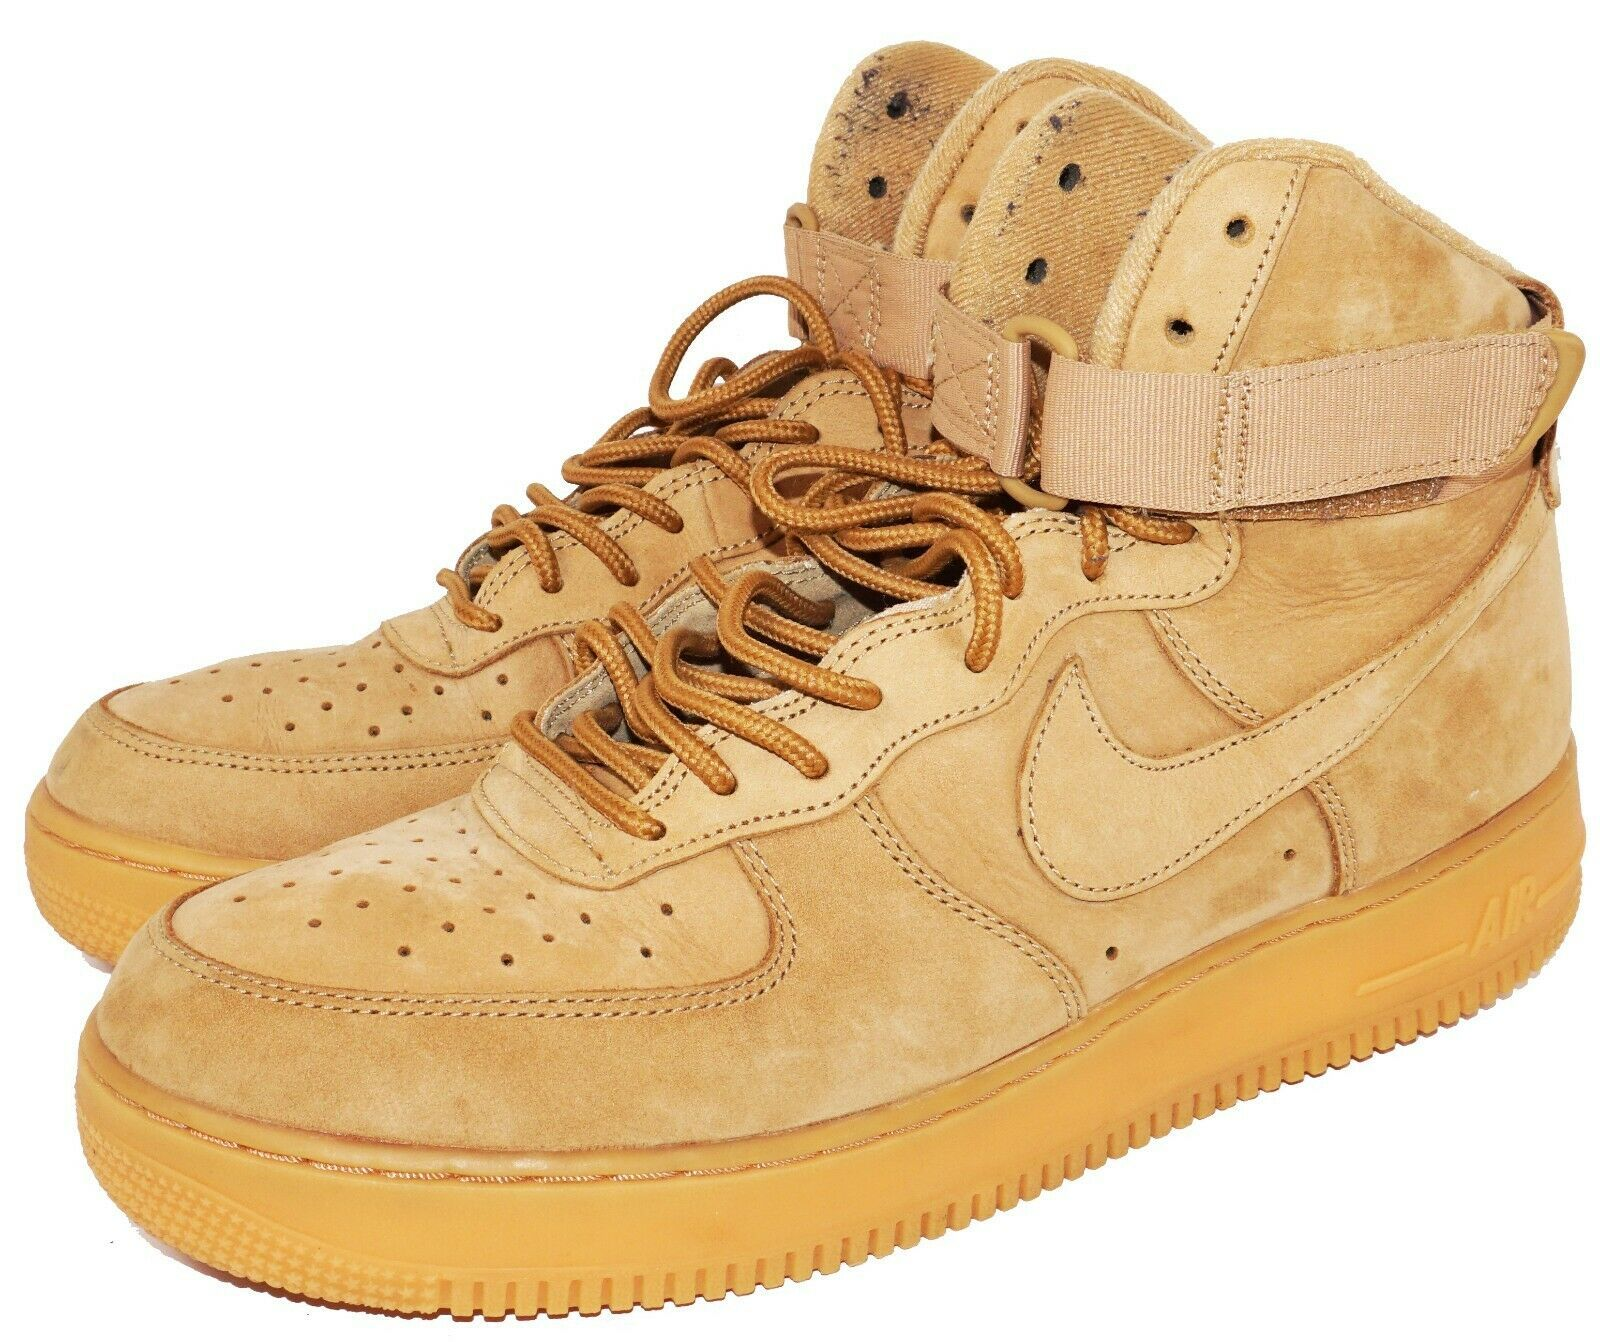 Air Force Top Wheat and 1 items Nike similar High Tan uXkZPi